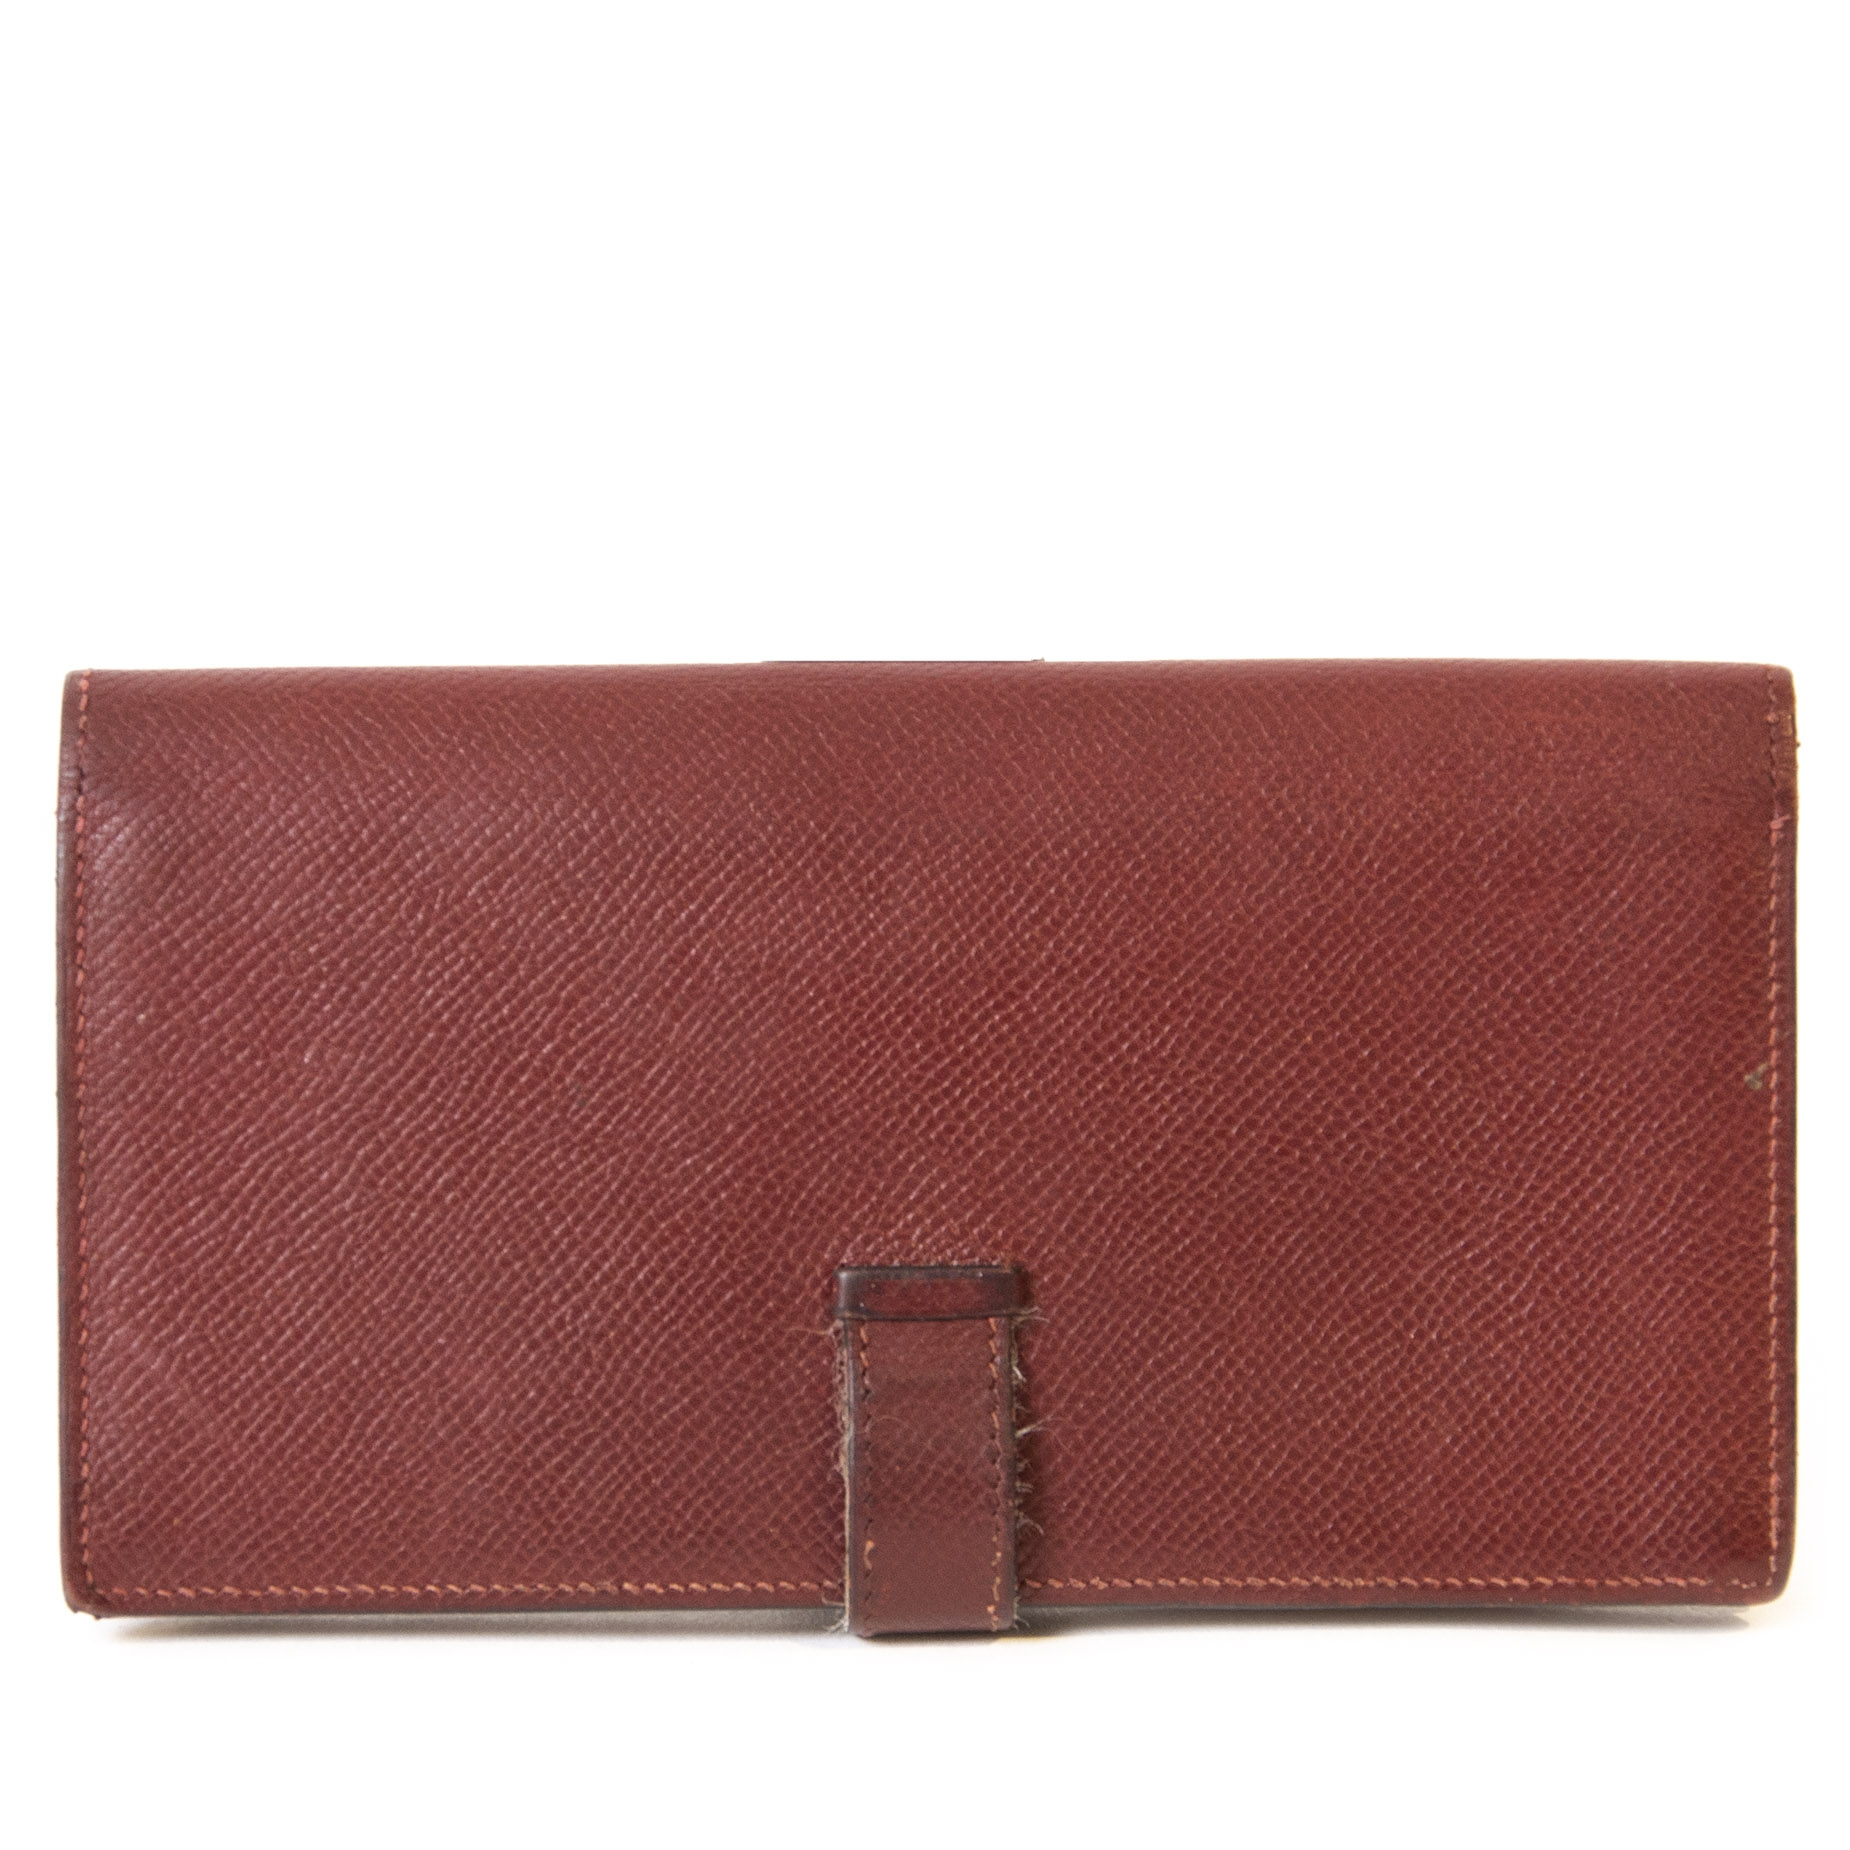 Hermes Bordeaux Epsom Leather Bearn Bifold Wallet